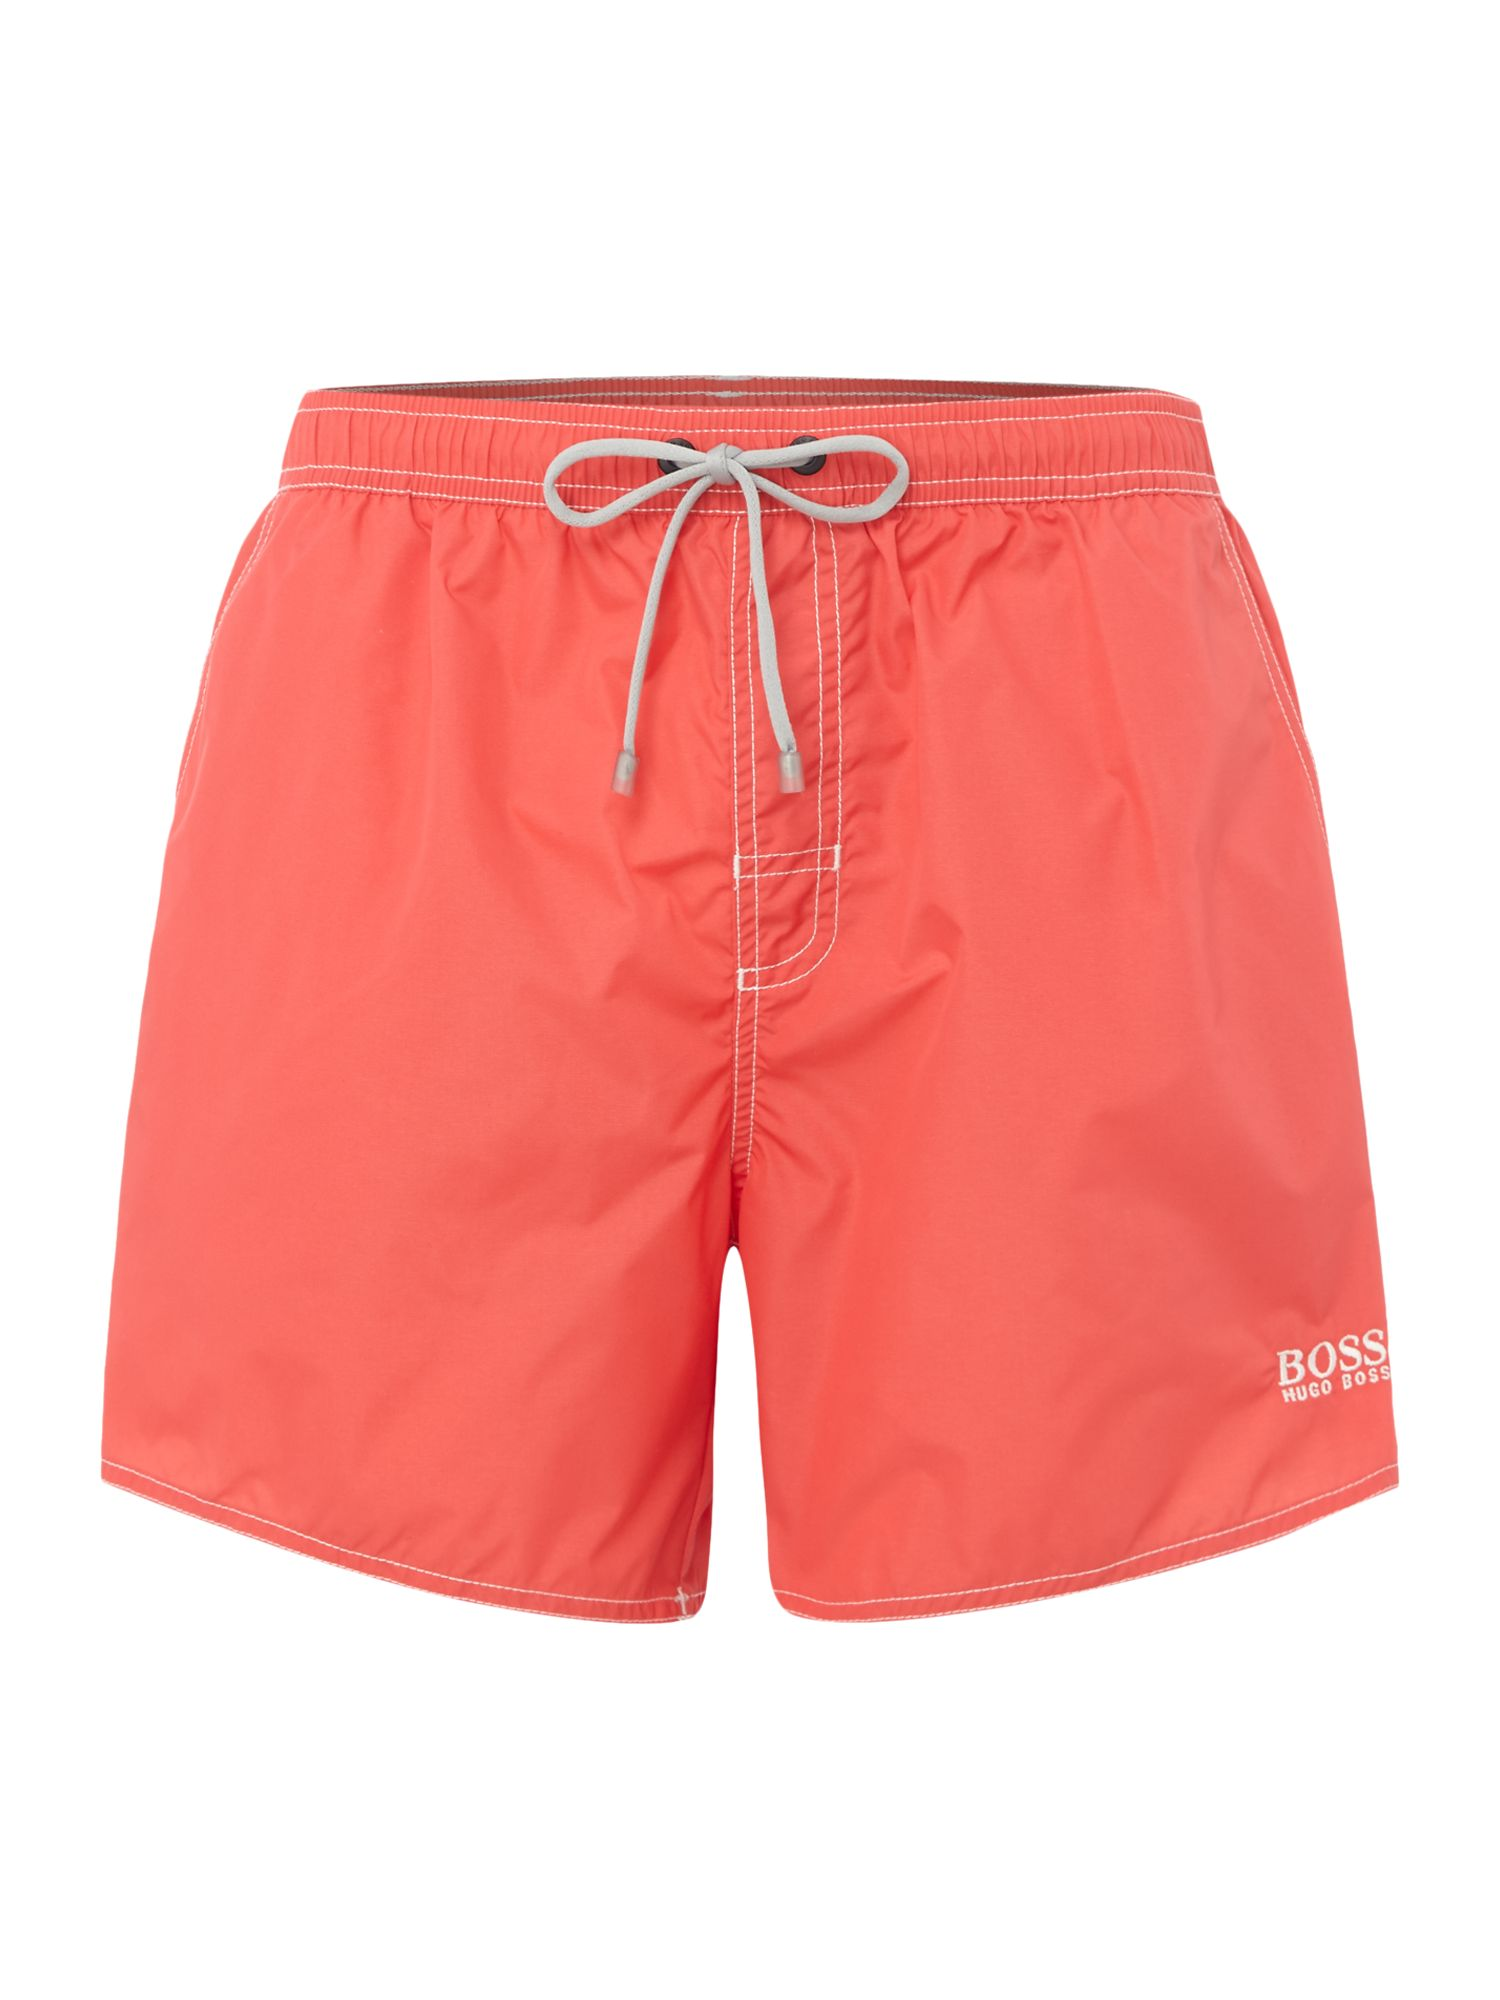 Men's Hugo Boss Lobster Shorts, Red